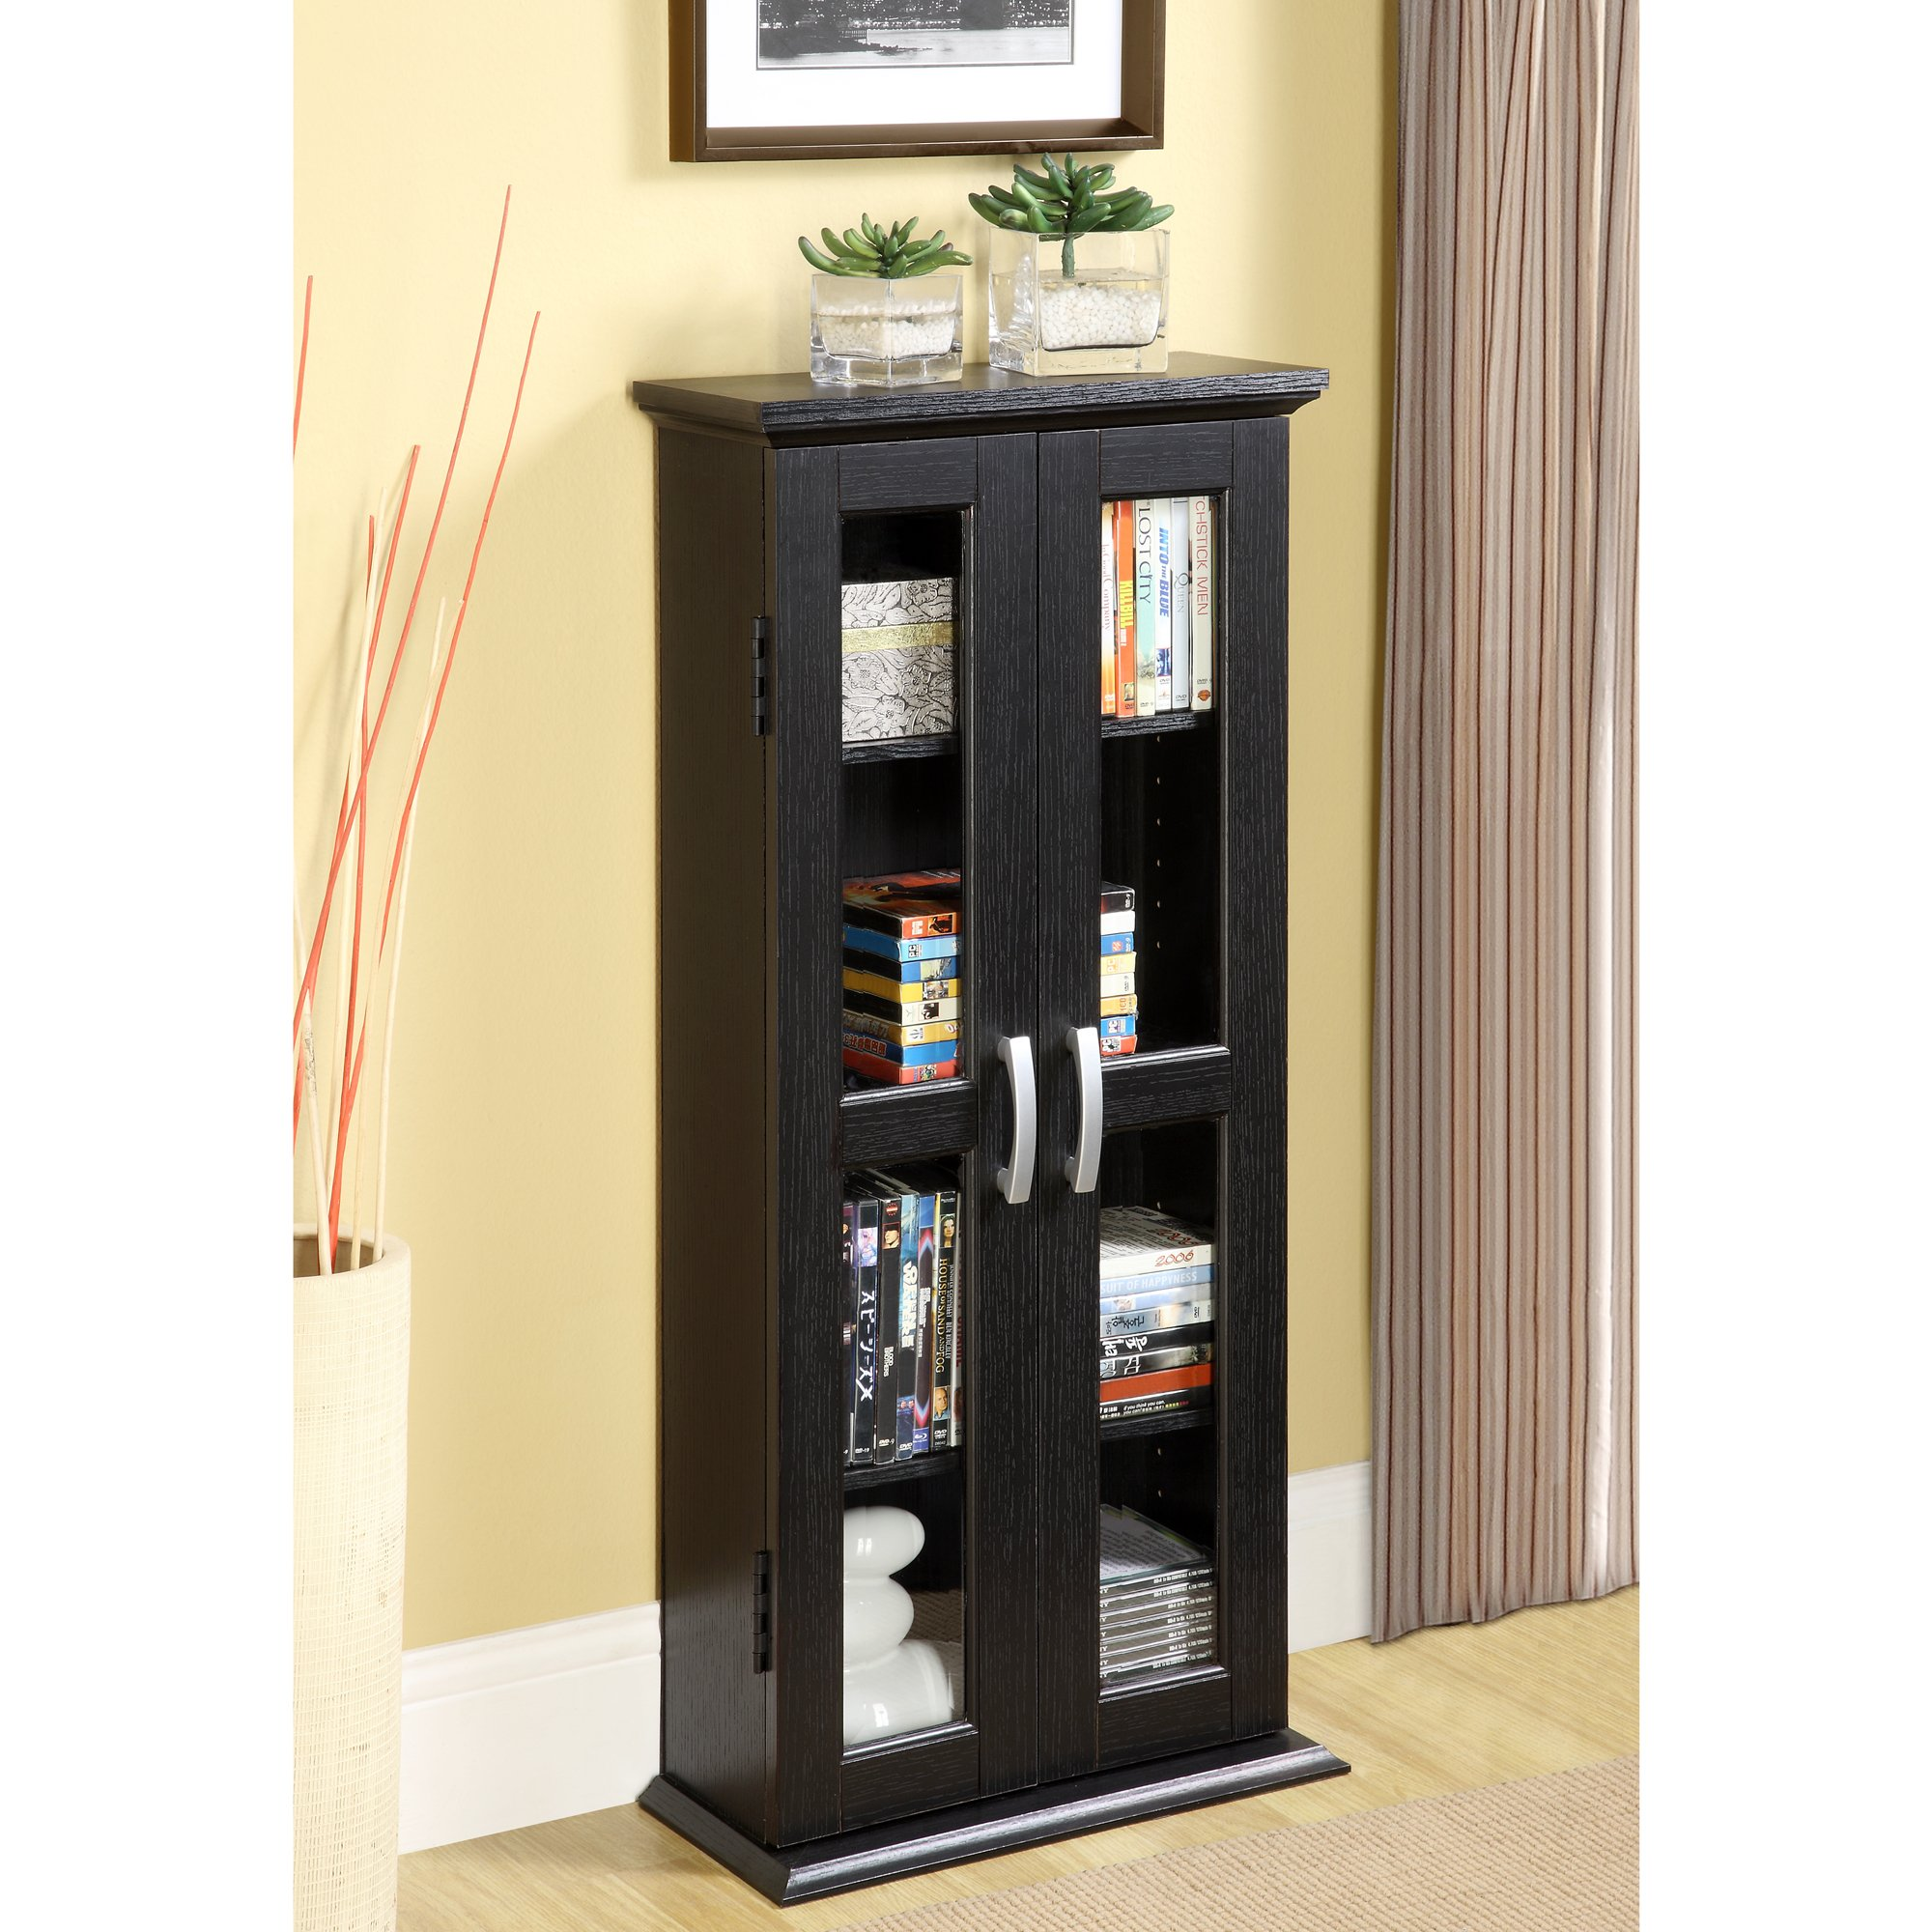 Walker Edison 41'' Media Storage Cabinet, Black